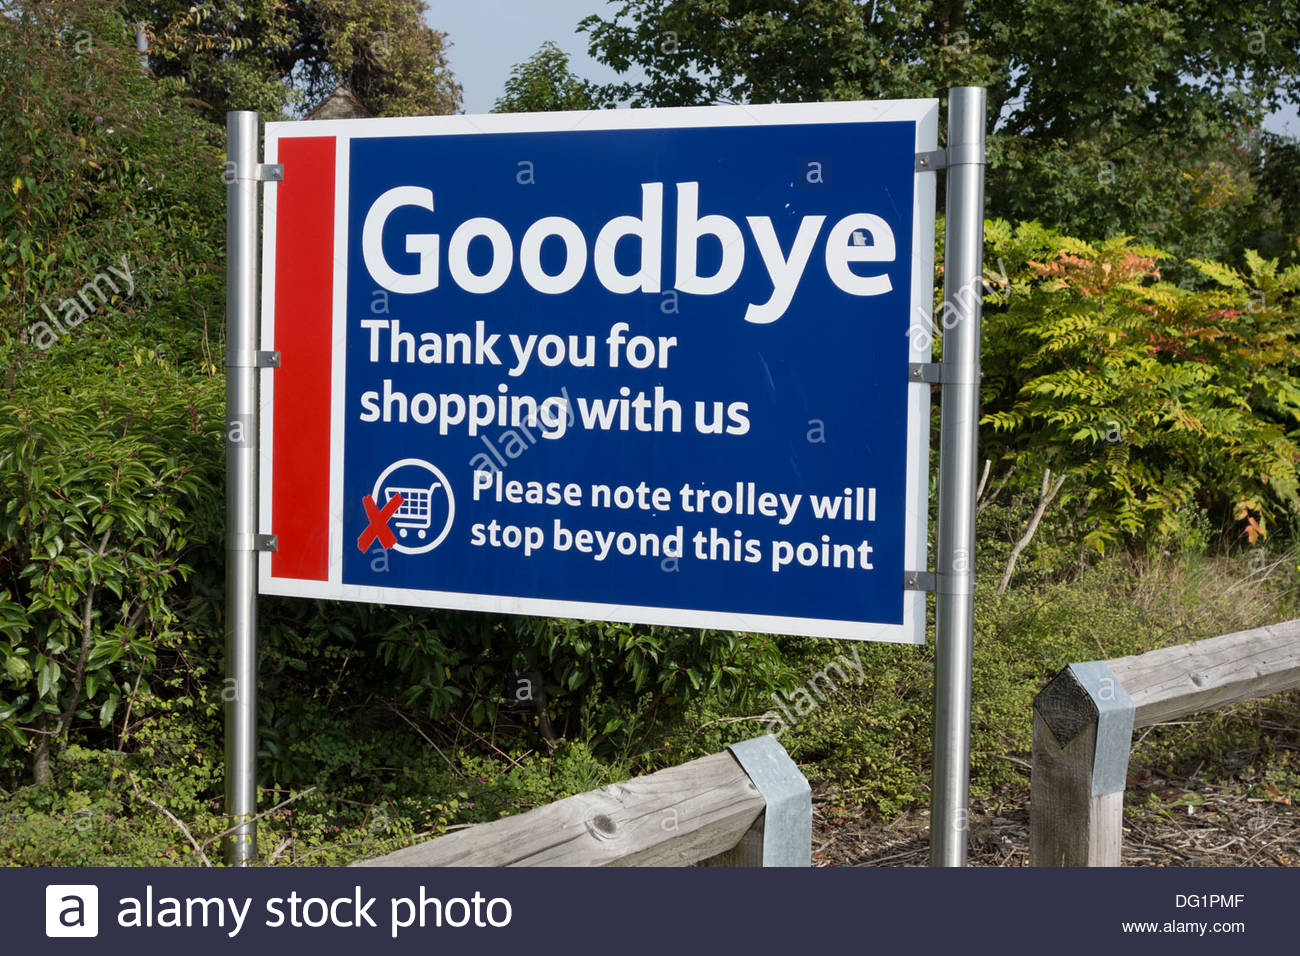 Goodbye, thank you for shopping with us sign at the Tesco supermarket on Newmarket Road, Cambridge - Stock Image